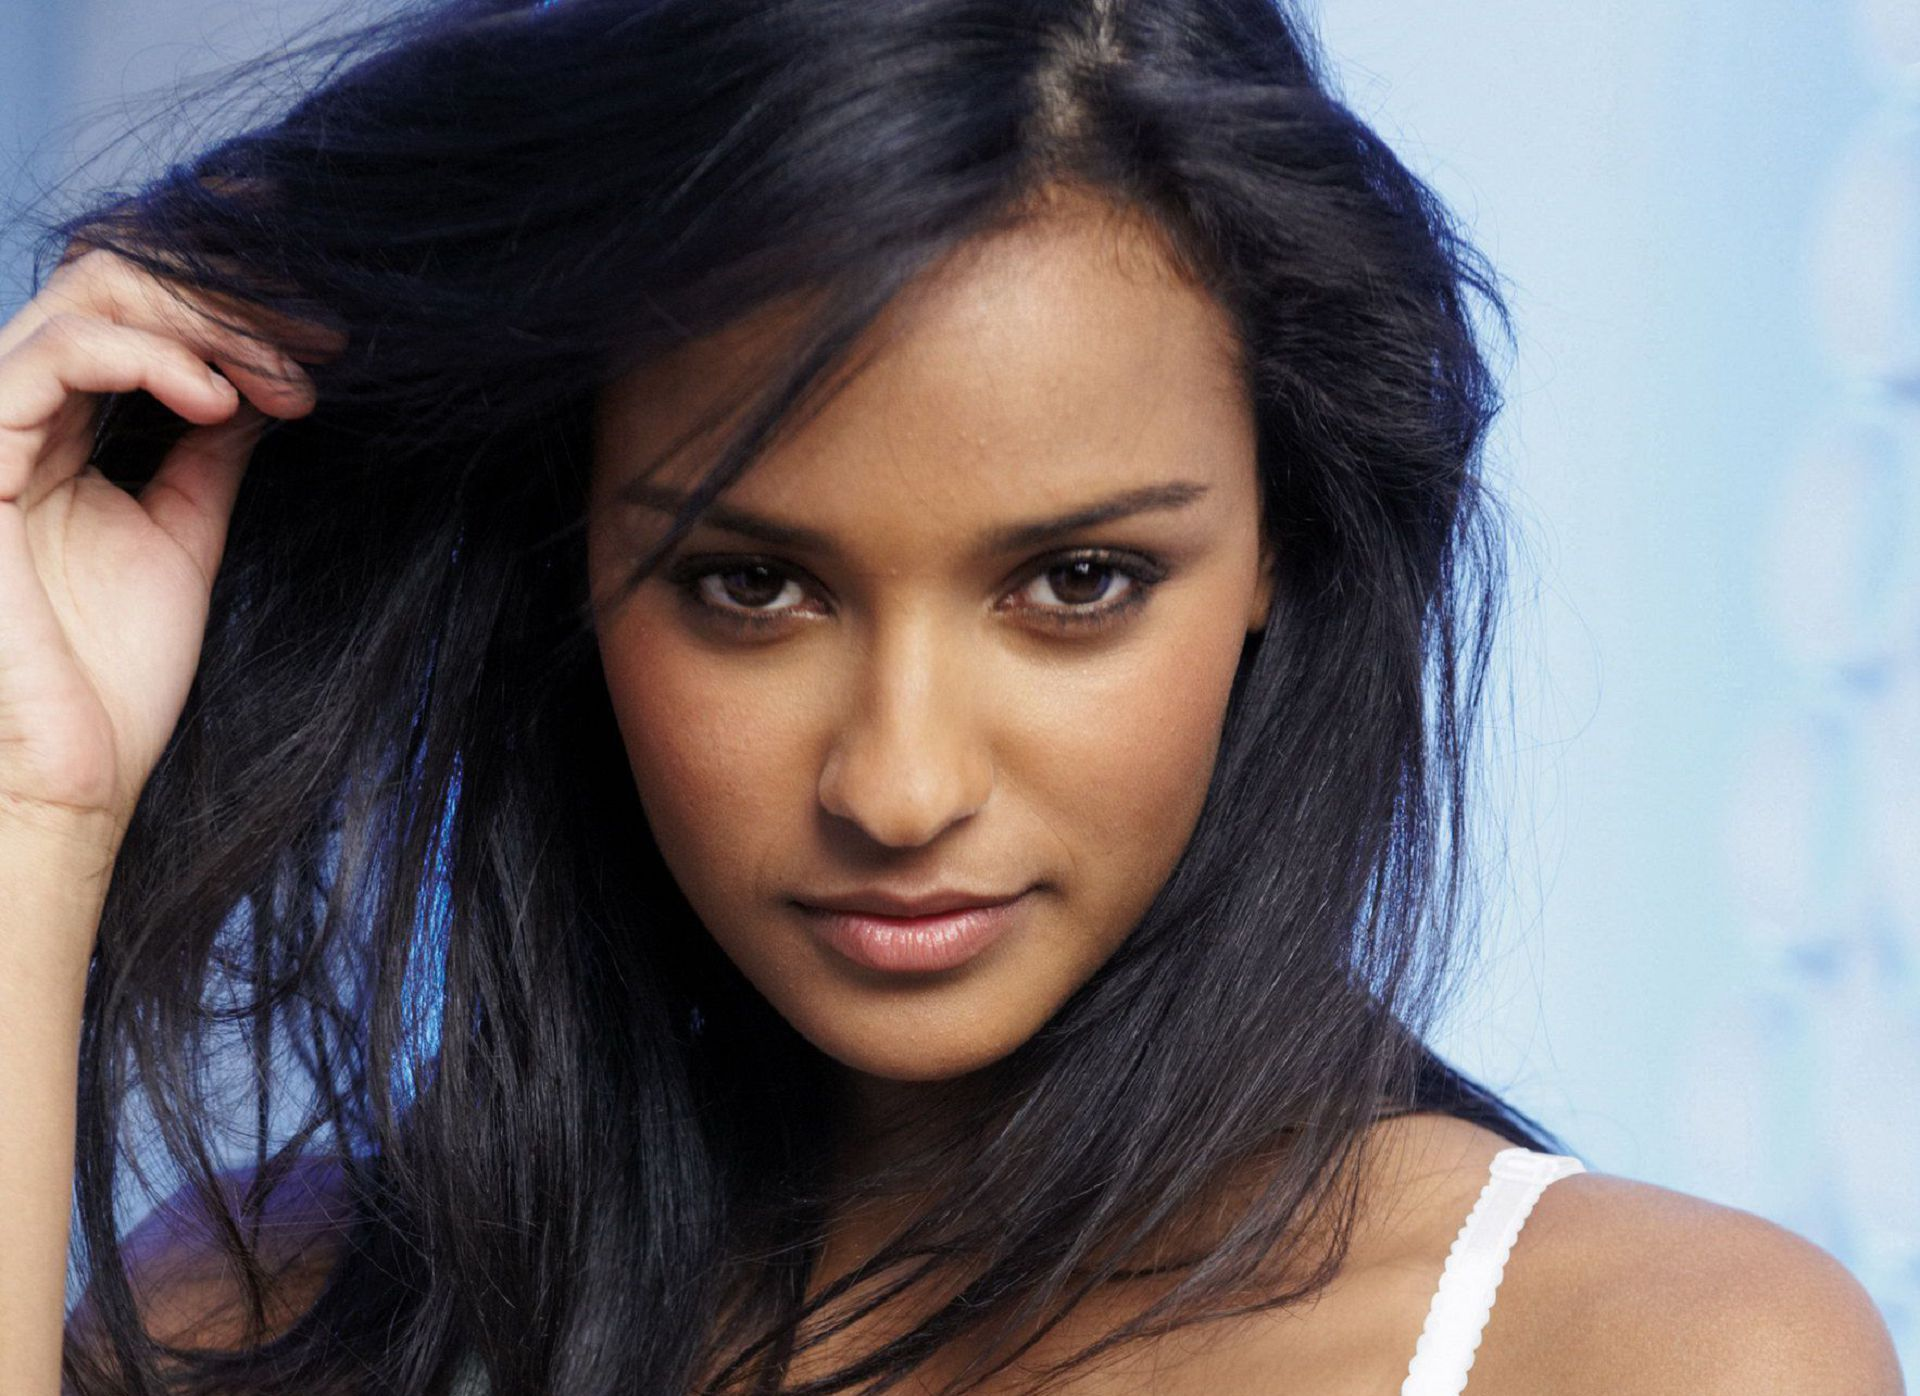 Gracie Carvalho Wallpapers Backgrounds HD Wallpapers Download Free Images Wallpaper [1000image.com]